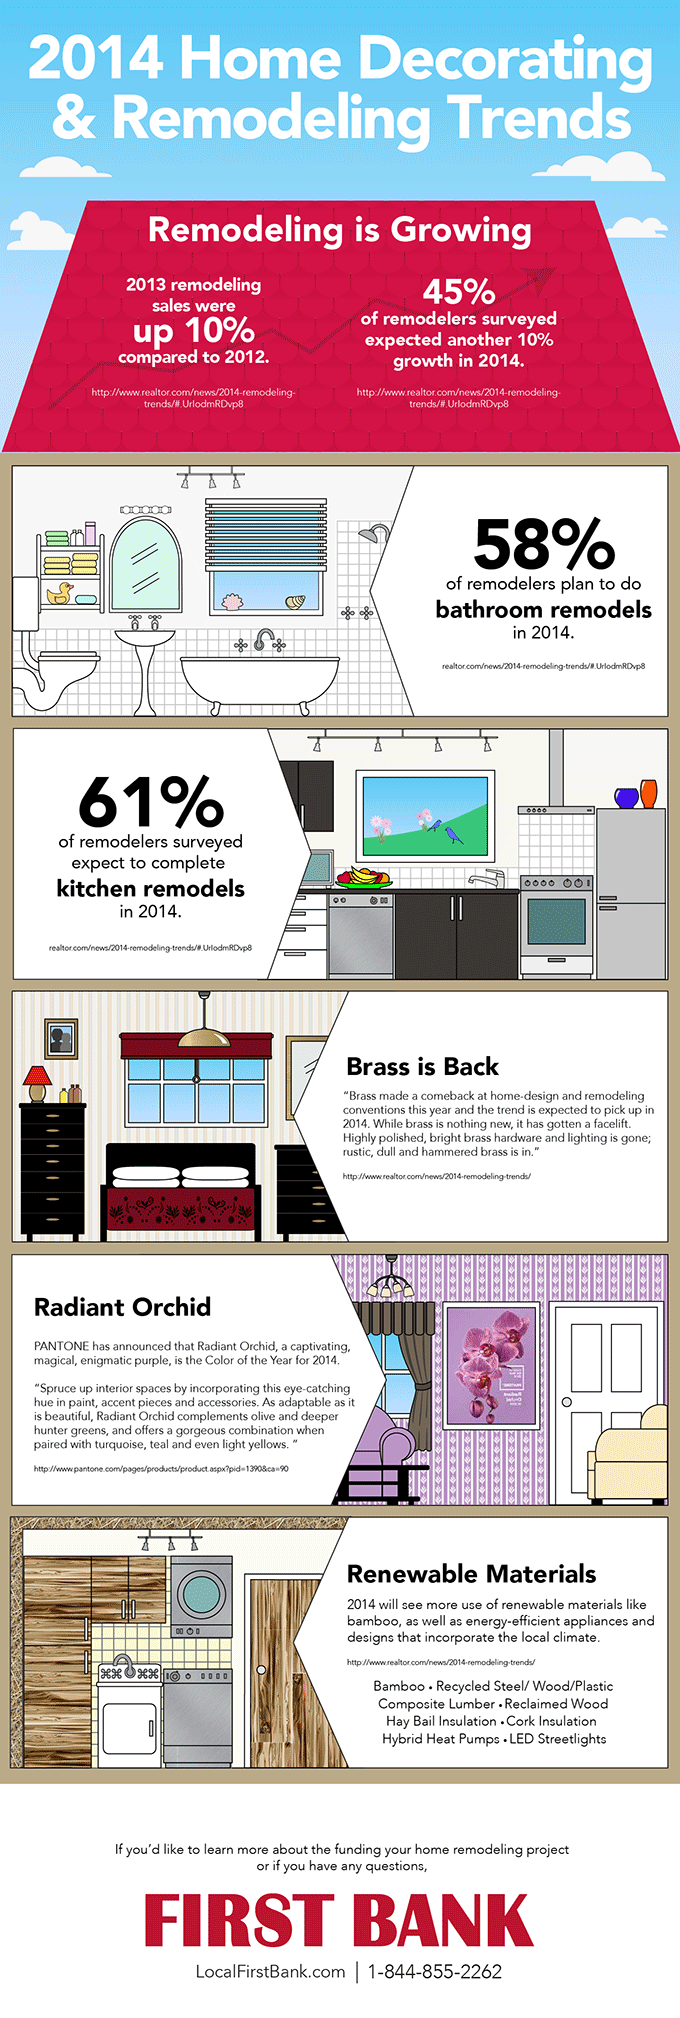 2014 Home Decorating & Remodeling Trends [INFOGRAPHIC]